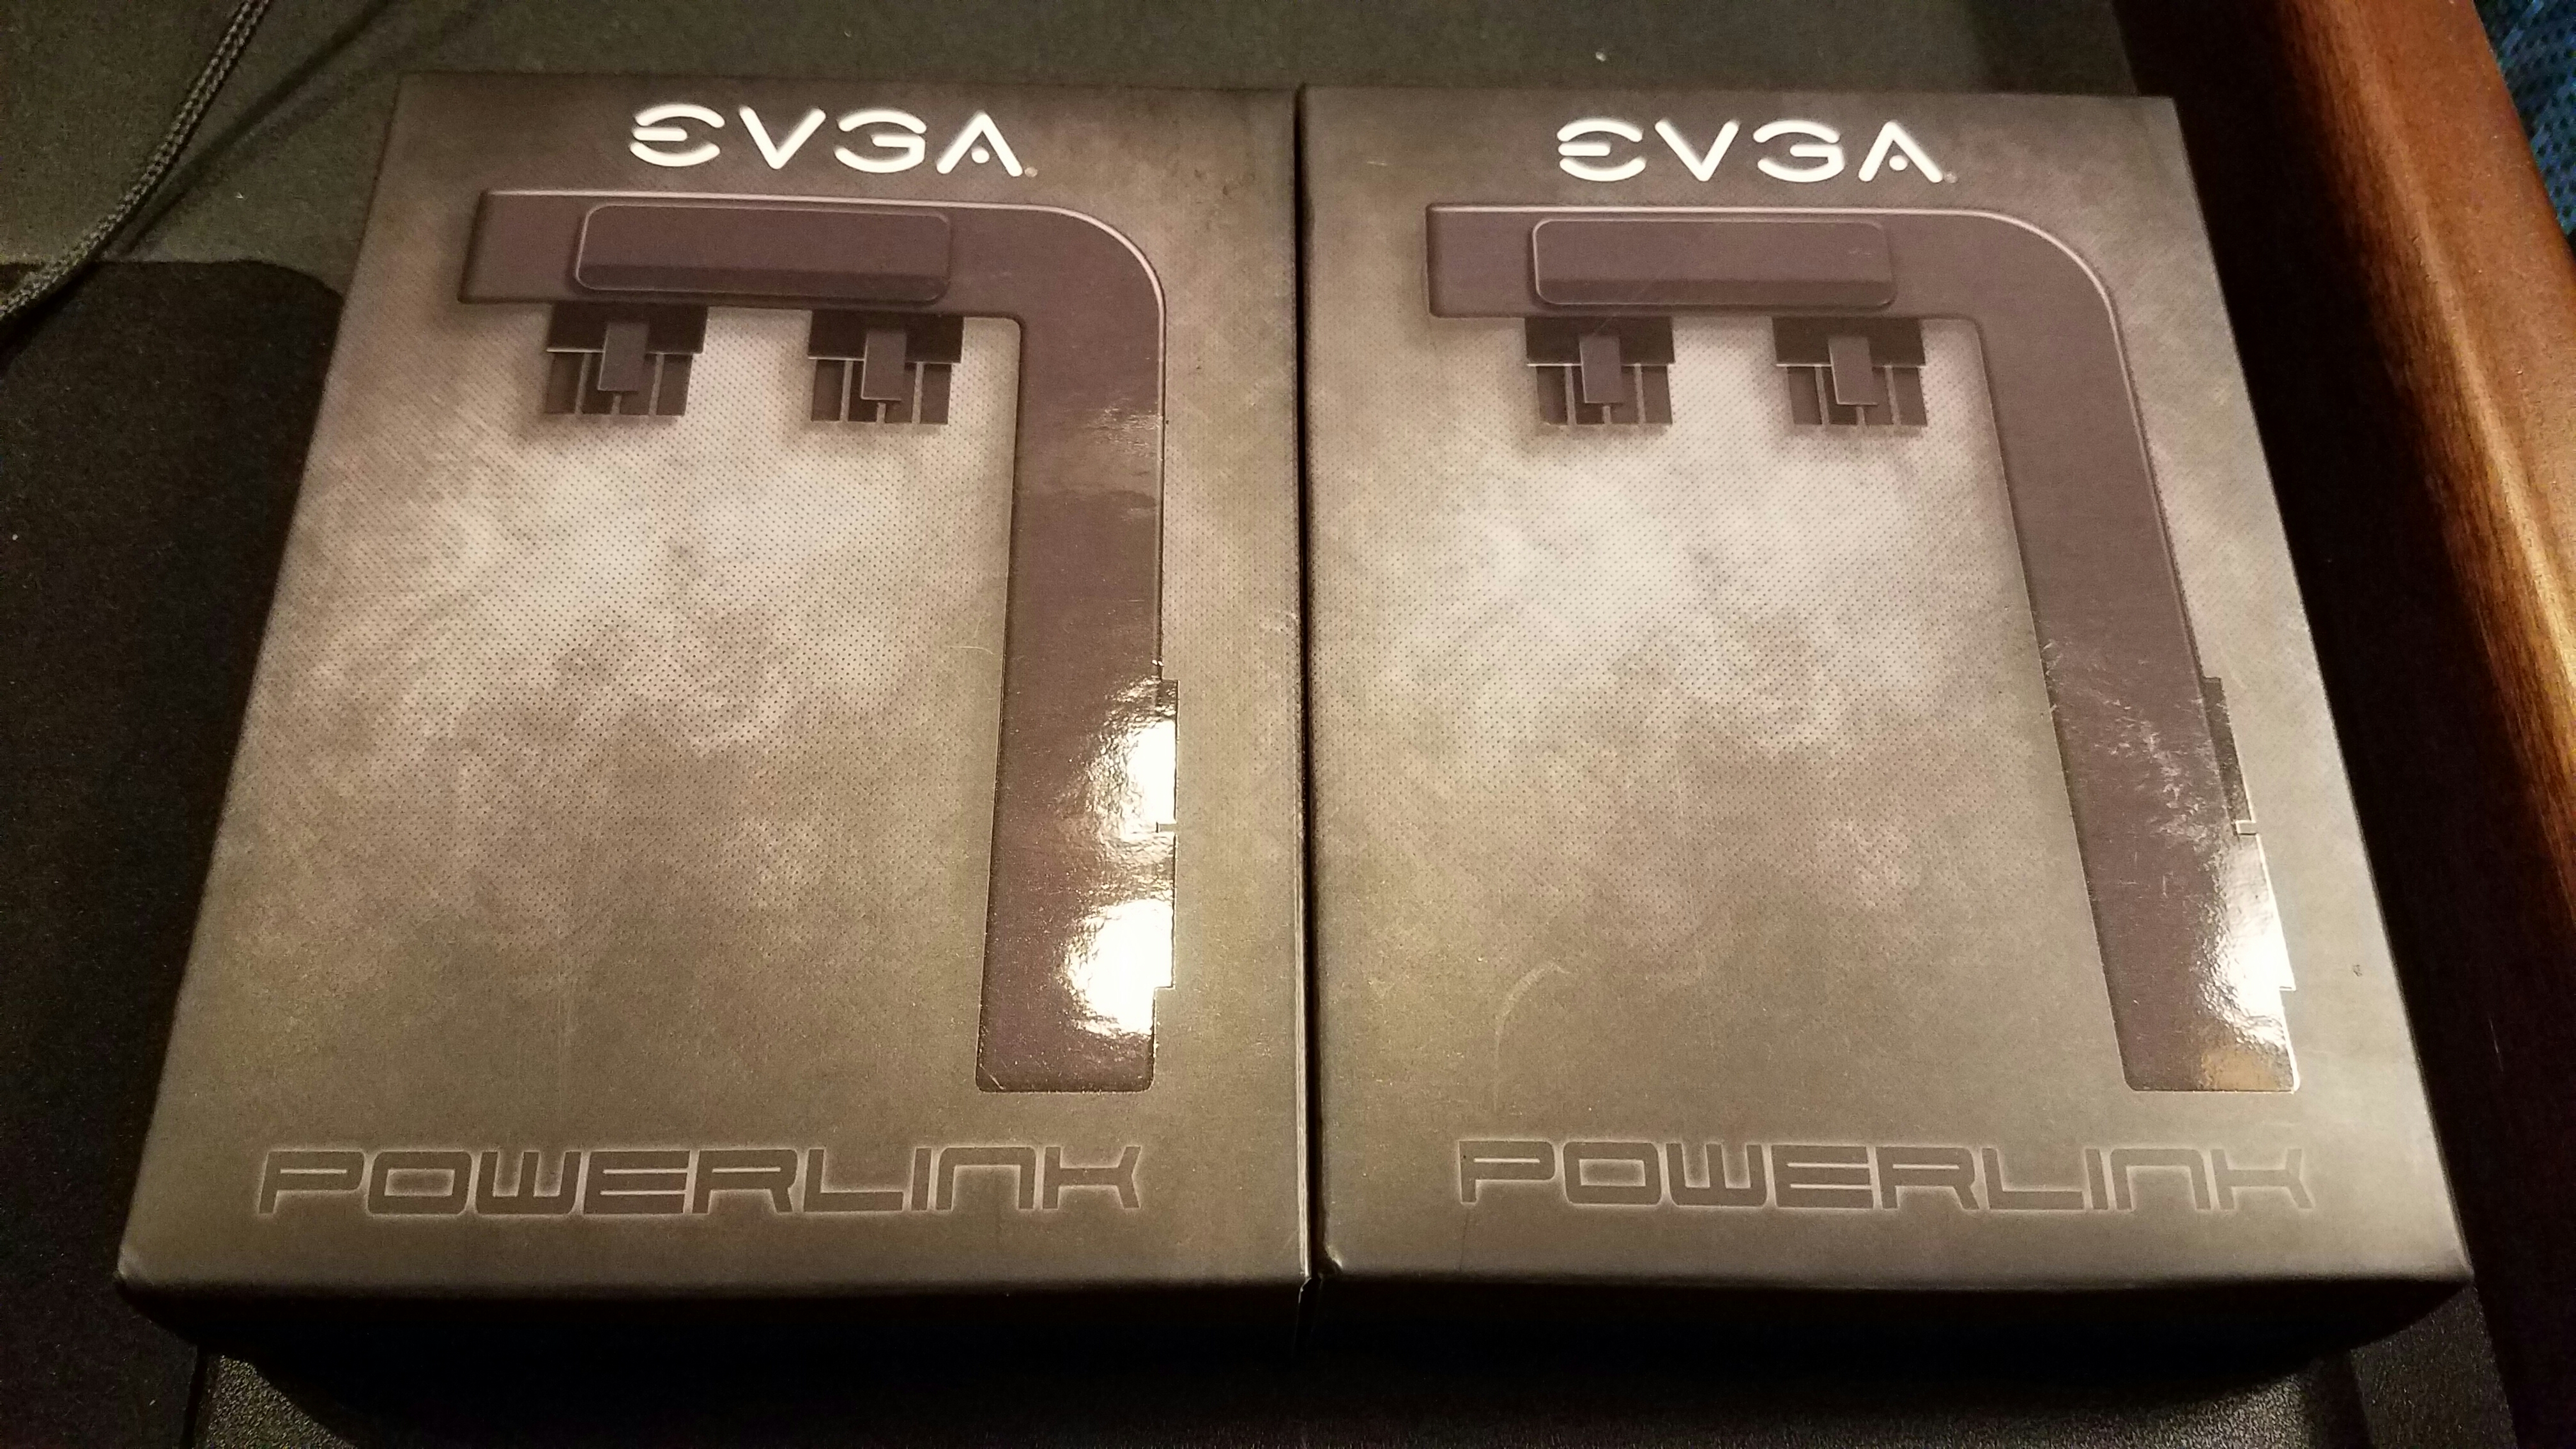 Remmeber The Evga Powerlink Now You Can Claim One Free Shipping Toshiba Satellite P35 Laptop Schematic Diagramla2371 20161116 185133